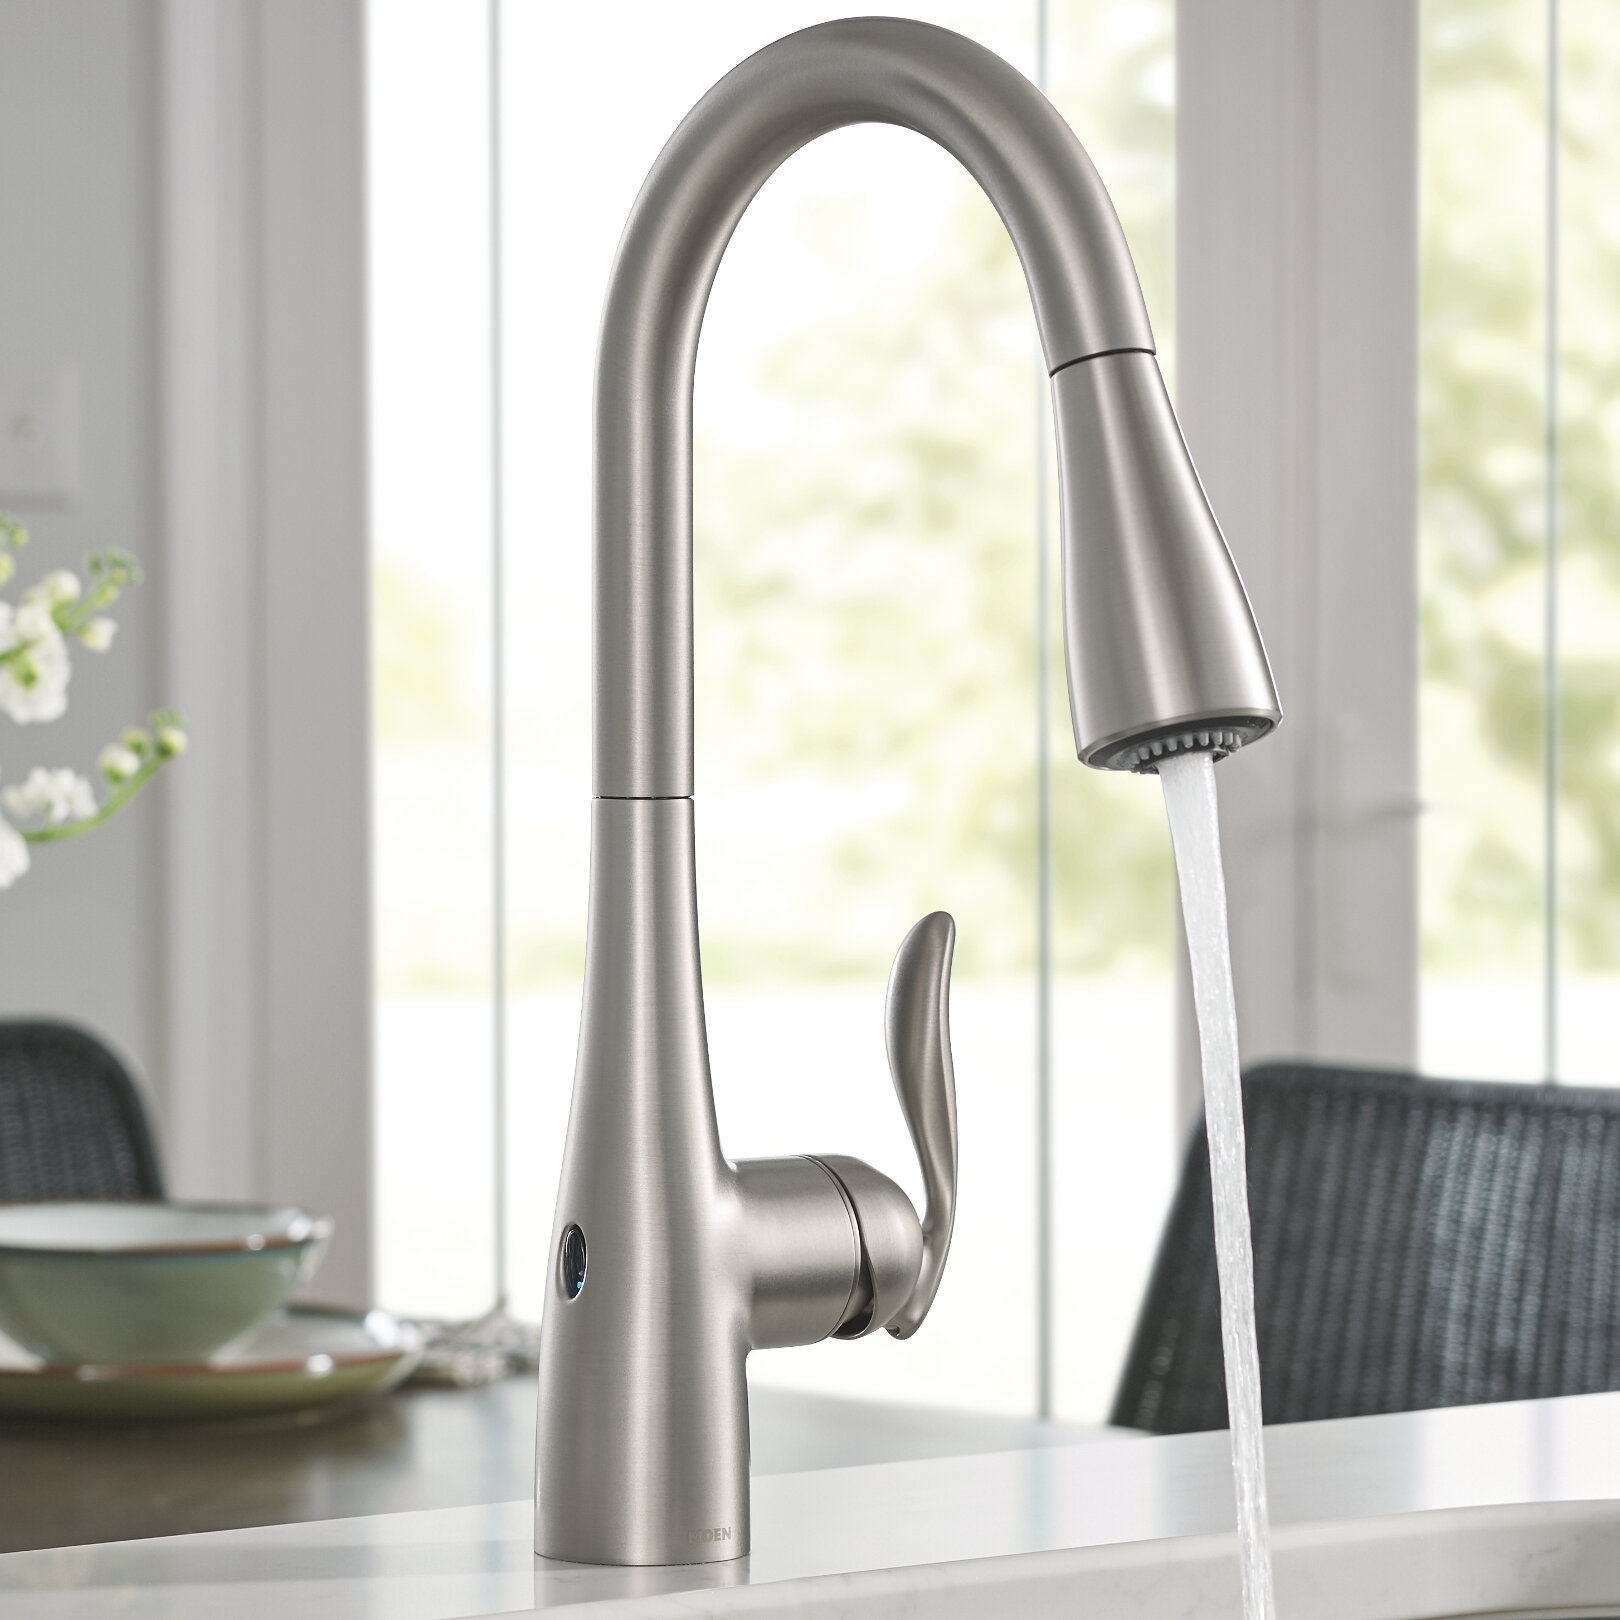 Fabulous Arbor Pull Down Touchless Single Handle Kitchen Faucet With Motionsense And Power Clean Technologies Home Interior And Landscaping Analalmasignezvosmurscom